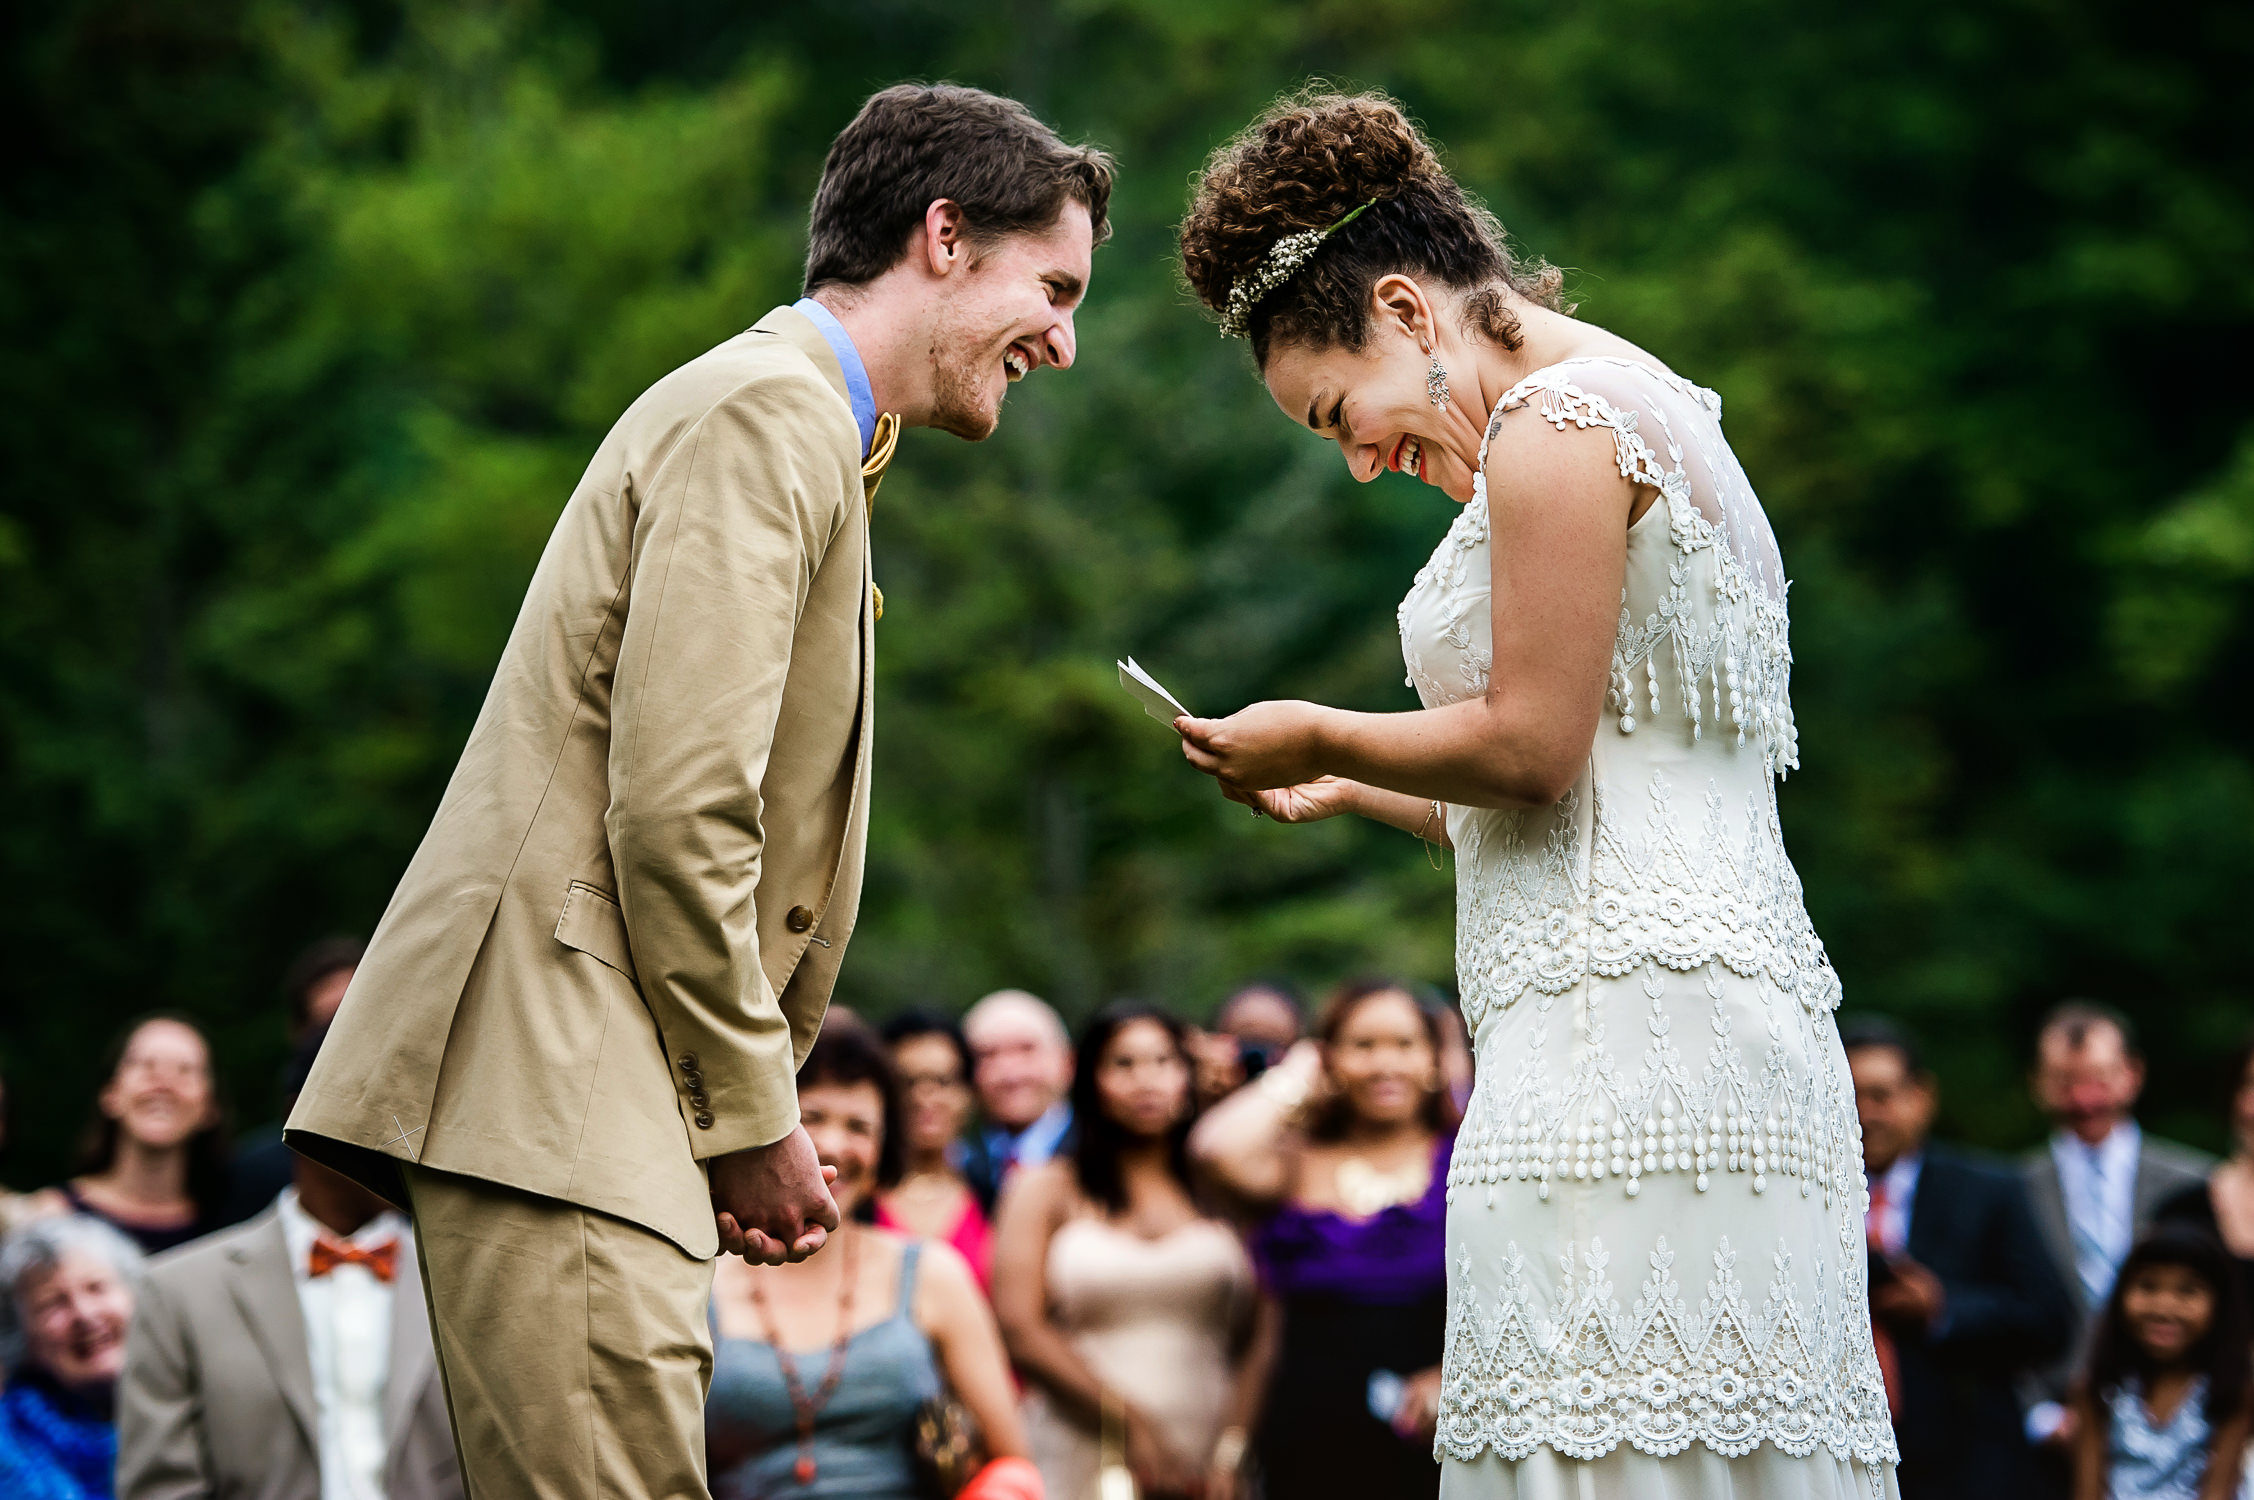 Vermont wedding photographers;fairlee vermont wedding;laughing during ceremony